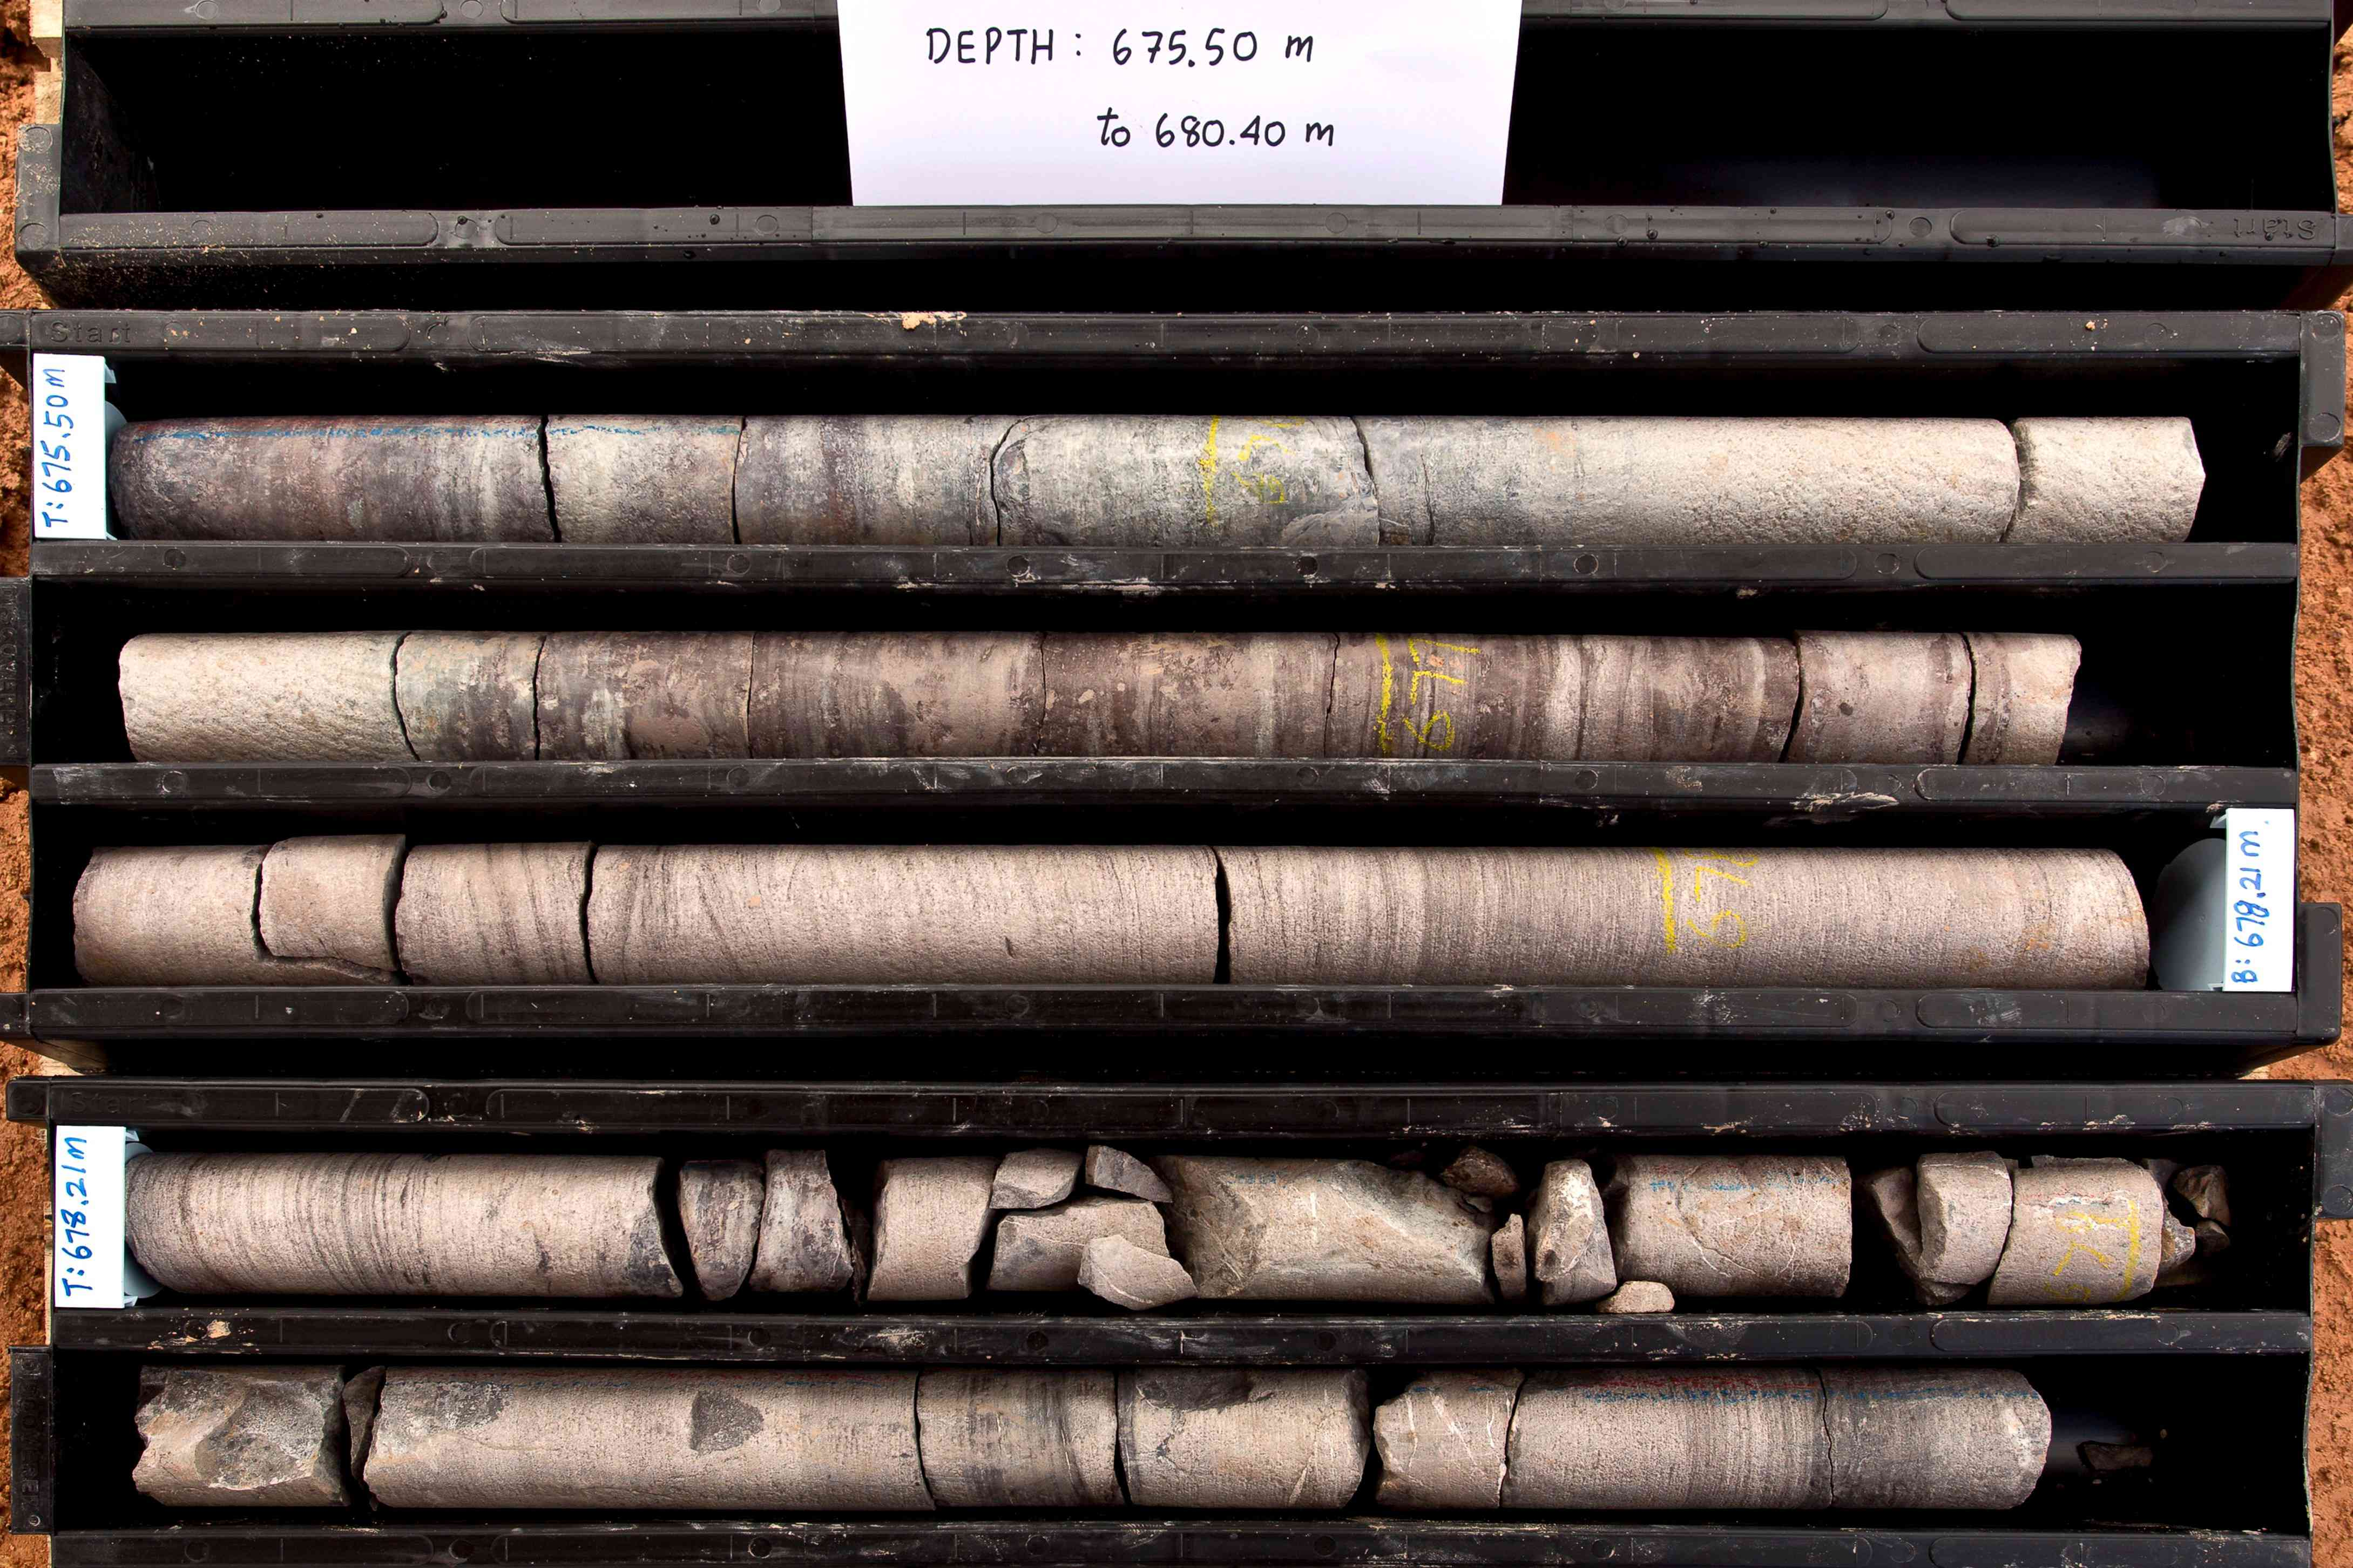 Geological core samples ready for analysis